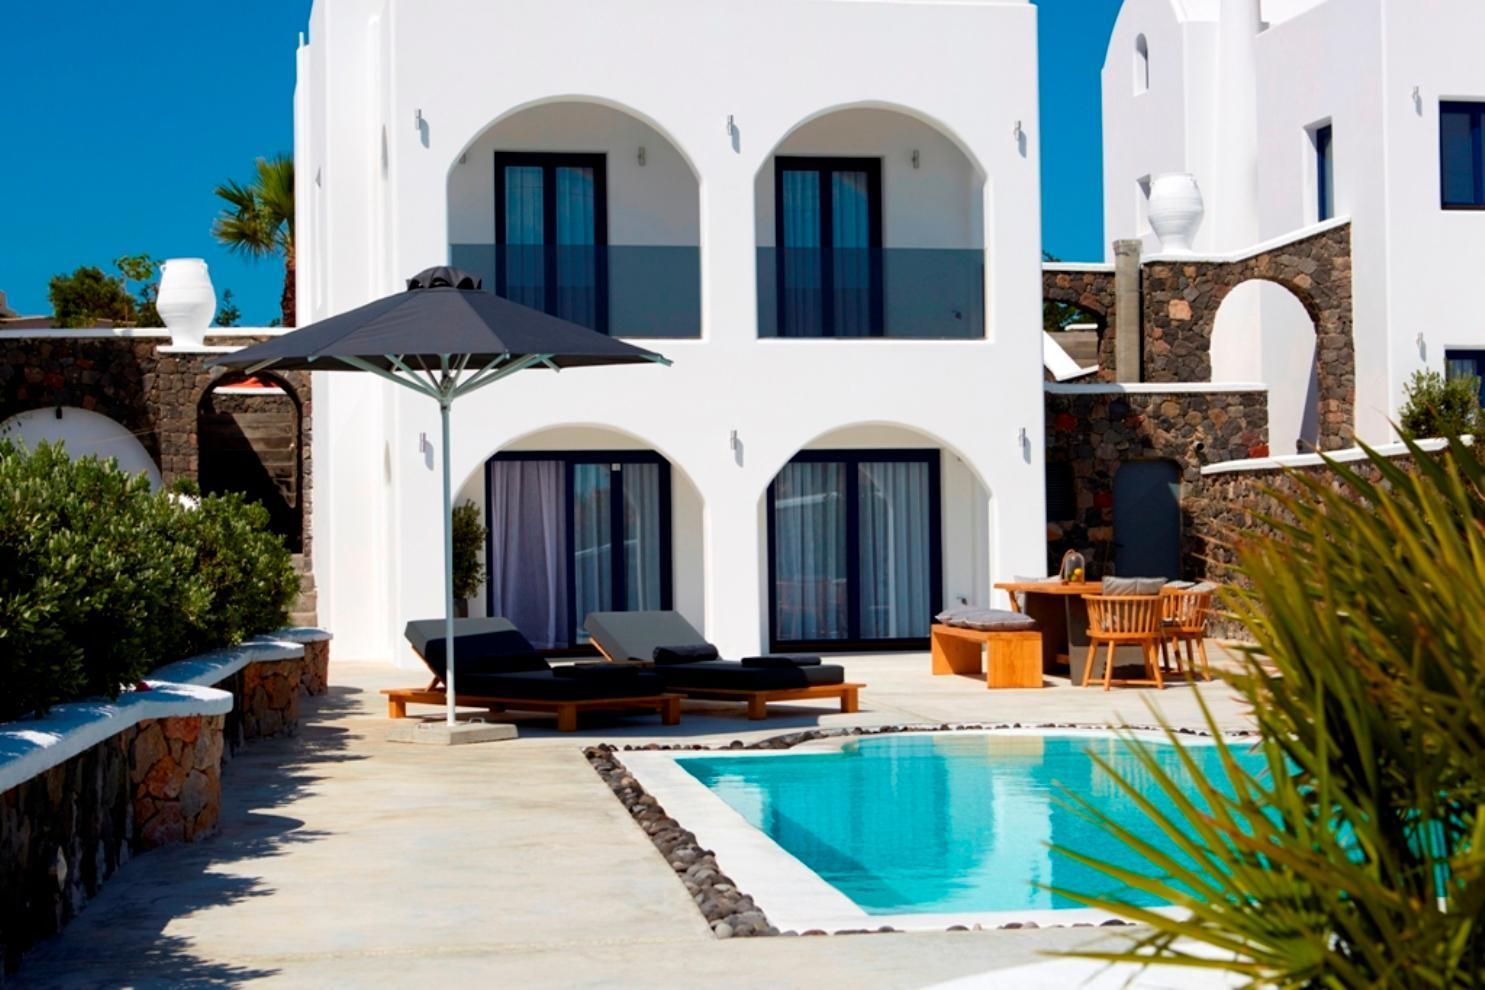 Property | Greece Vacation Villas | Vacation villas, House